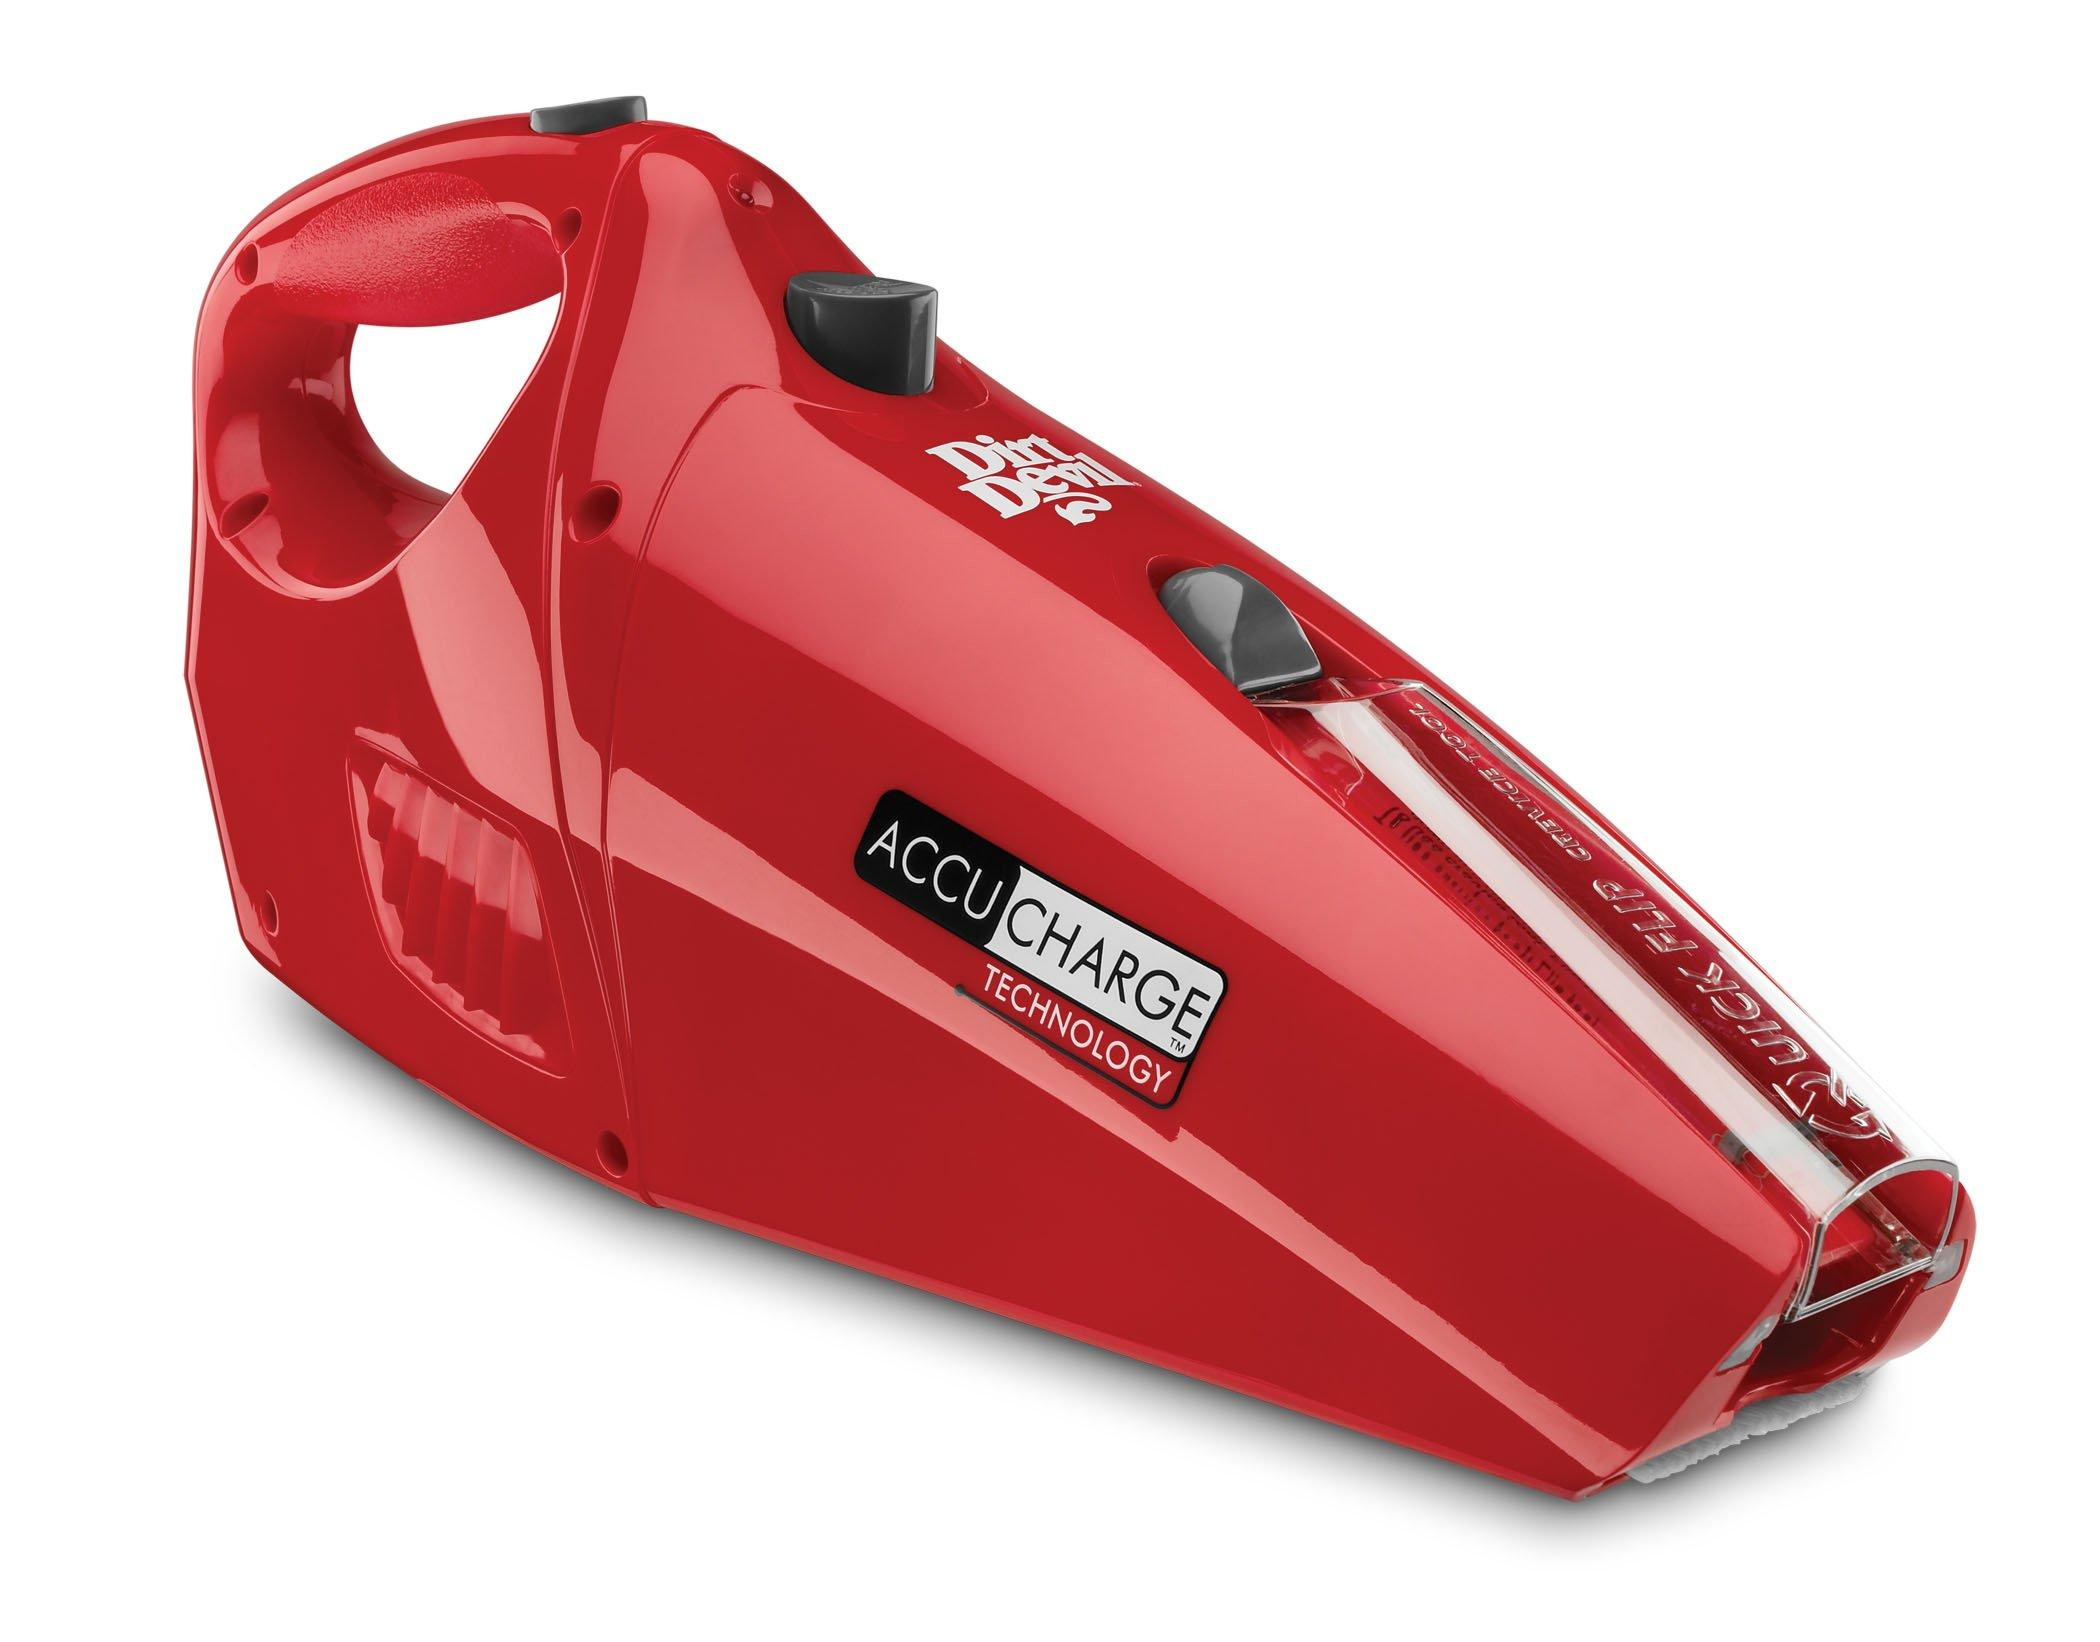 Accucharge 15.6V Cordless Hand Vacuum1